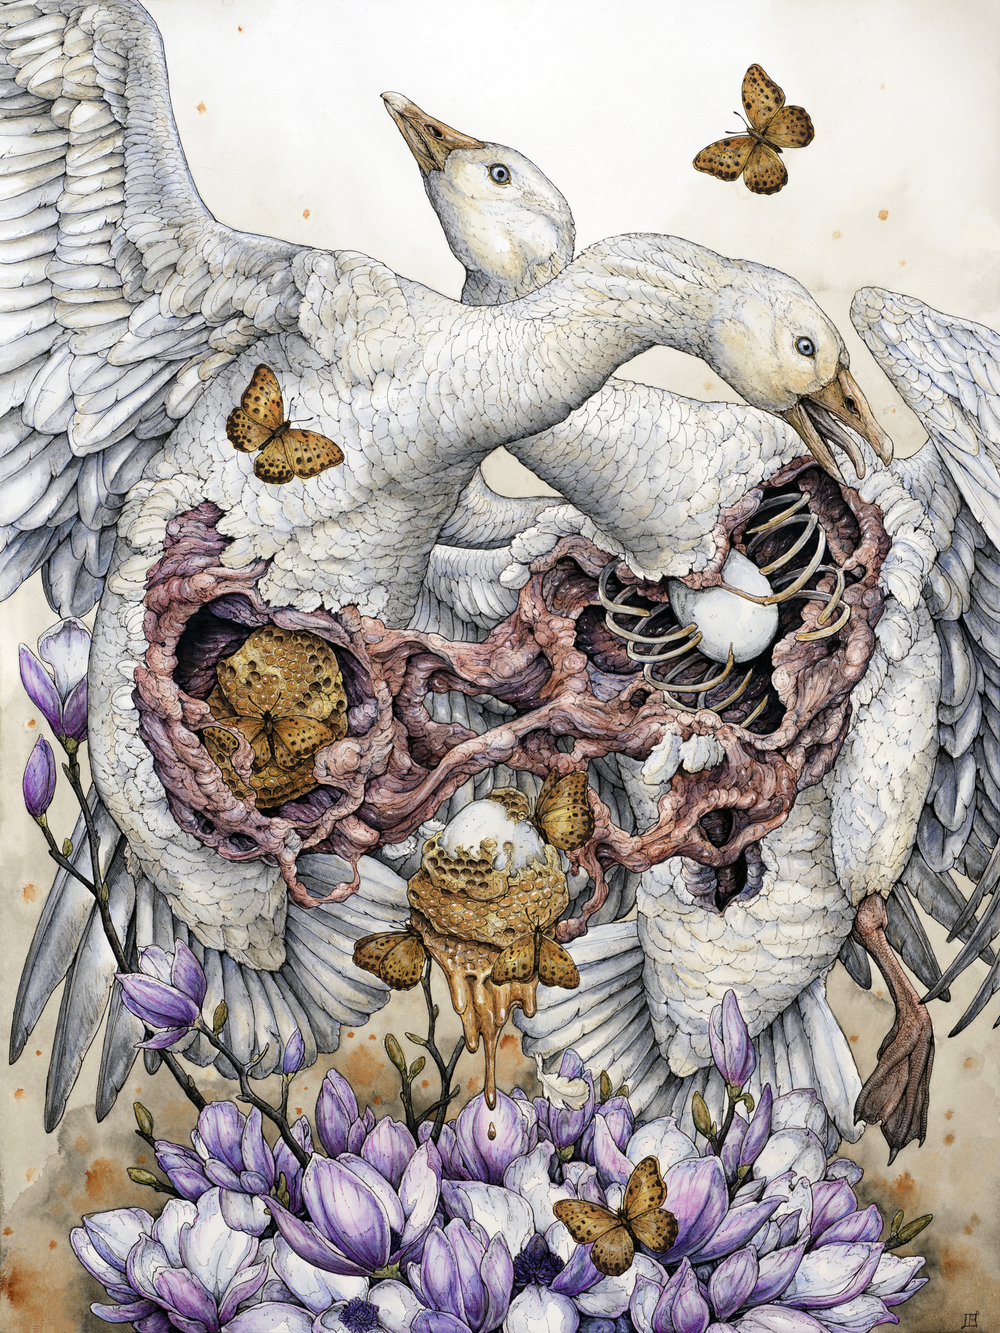 'To Kill the Goose that Laid the Golden Egg' by Lauren Marx